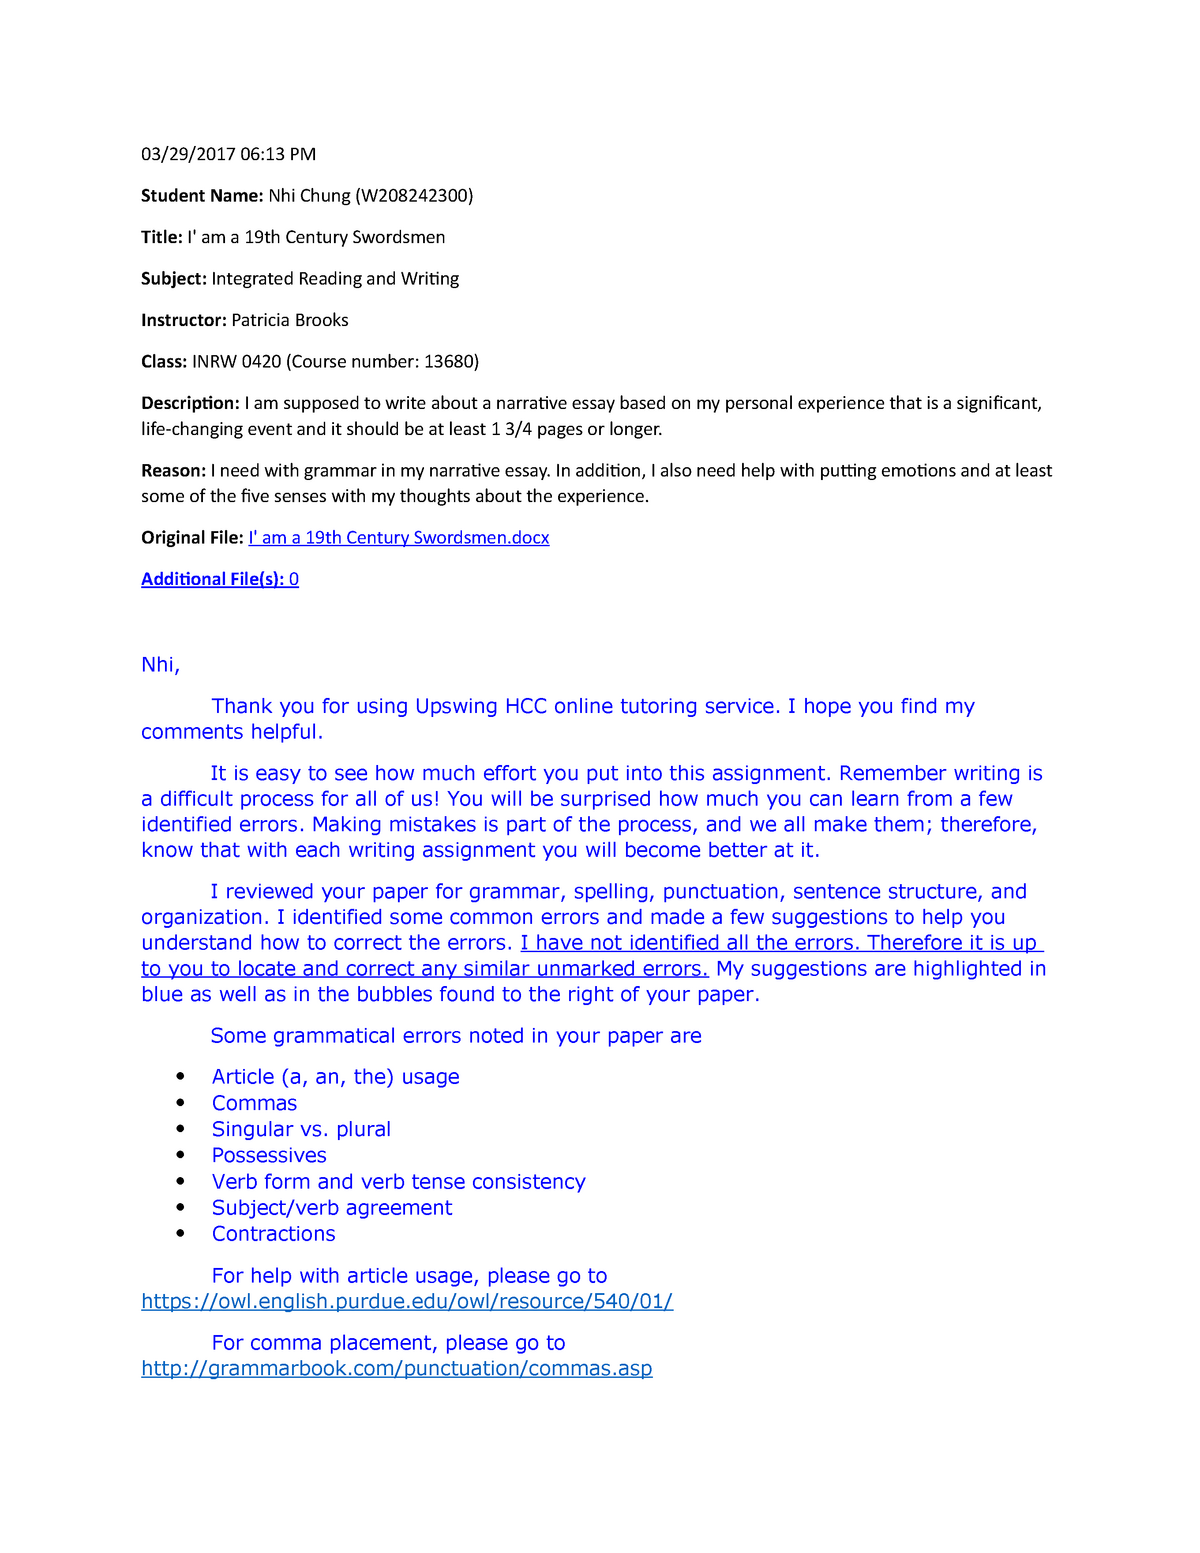 narrative essay tutor comments    required   inrw  integrated